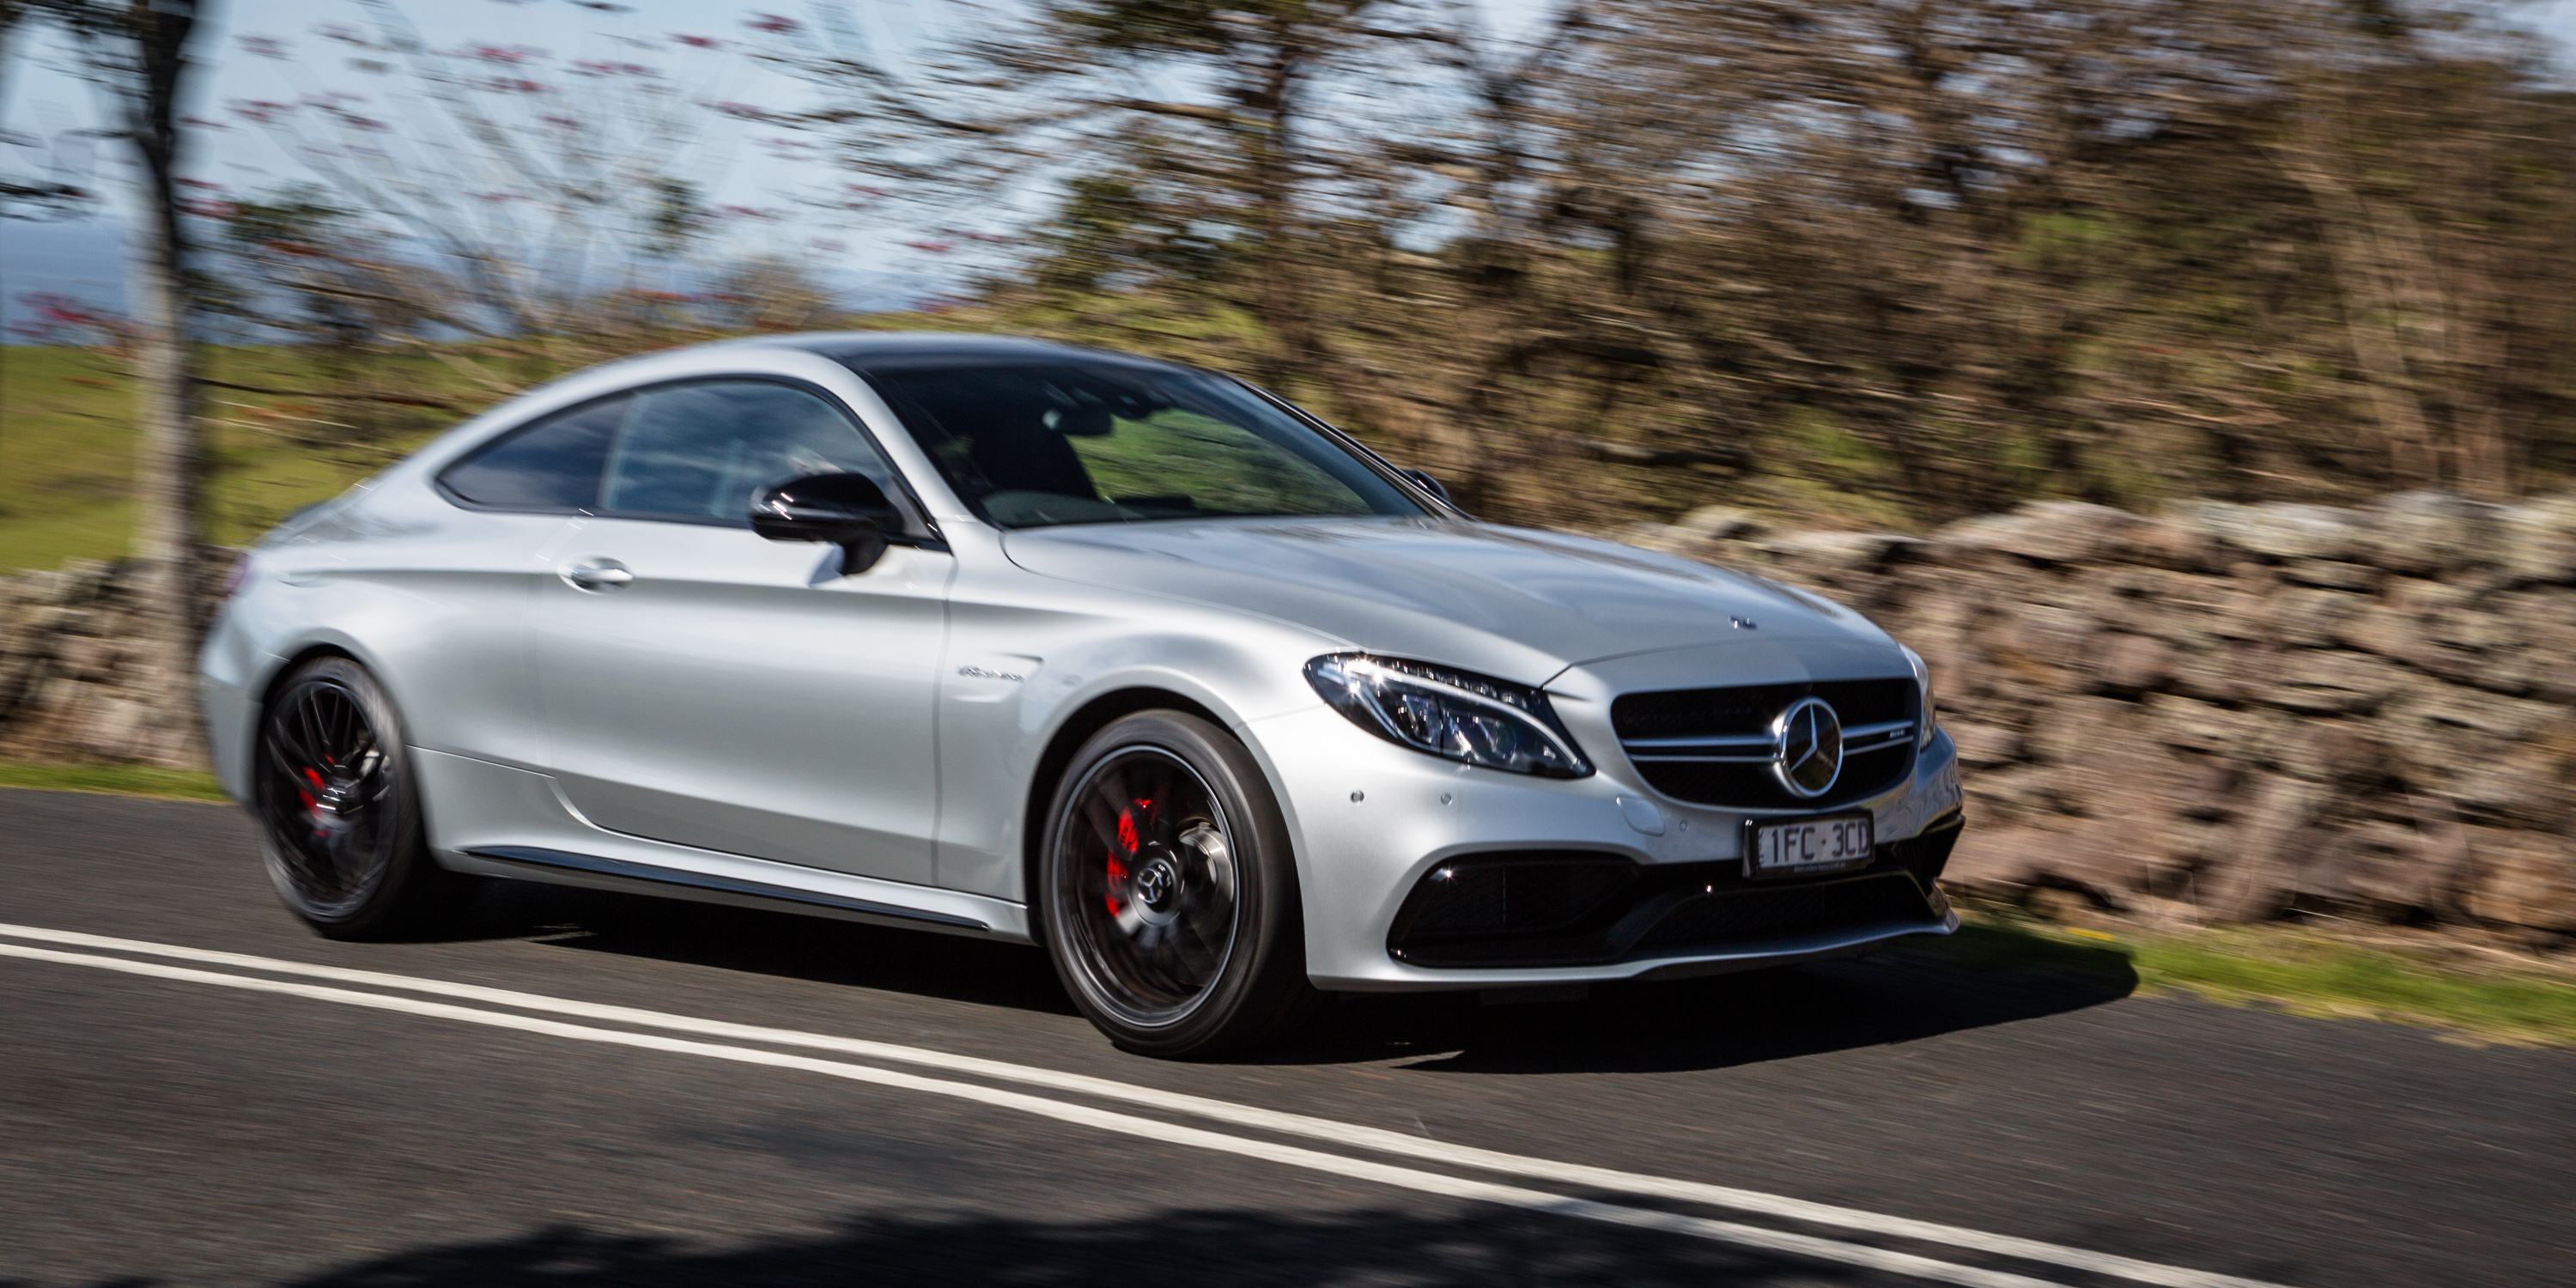 2017 mercedes amg c63 s coupe review photos caradvice. Black Bedroom Furniture Sets. Home Design Ideas